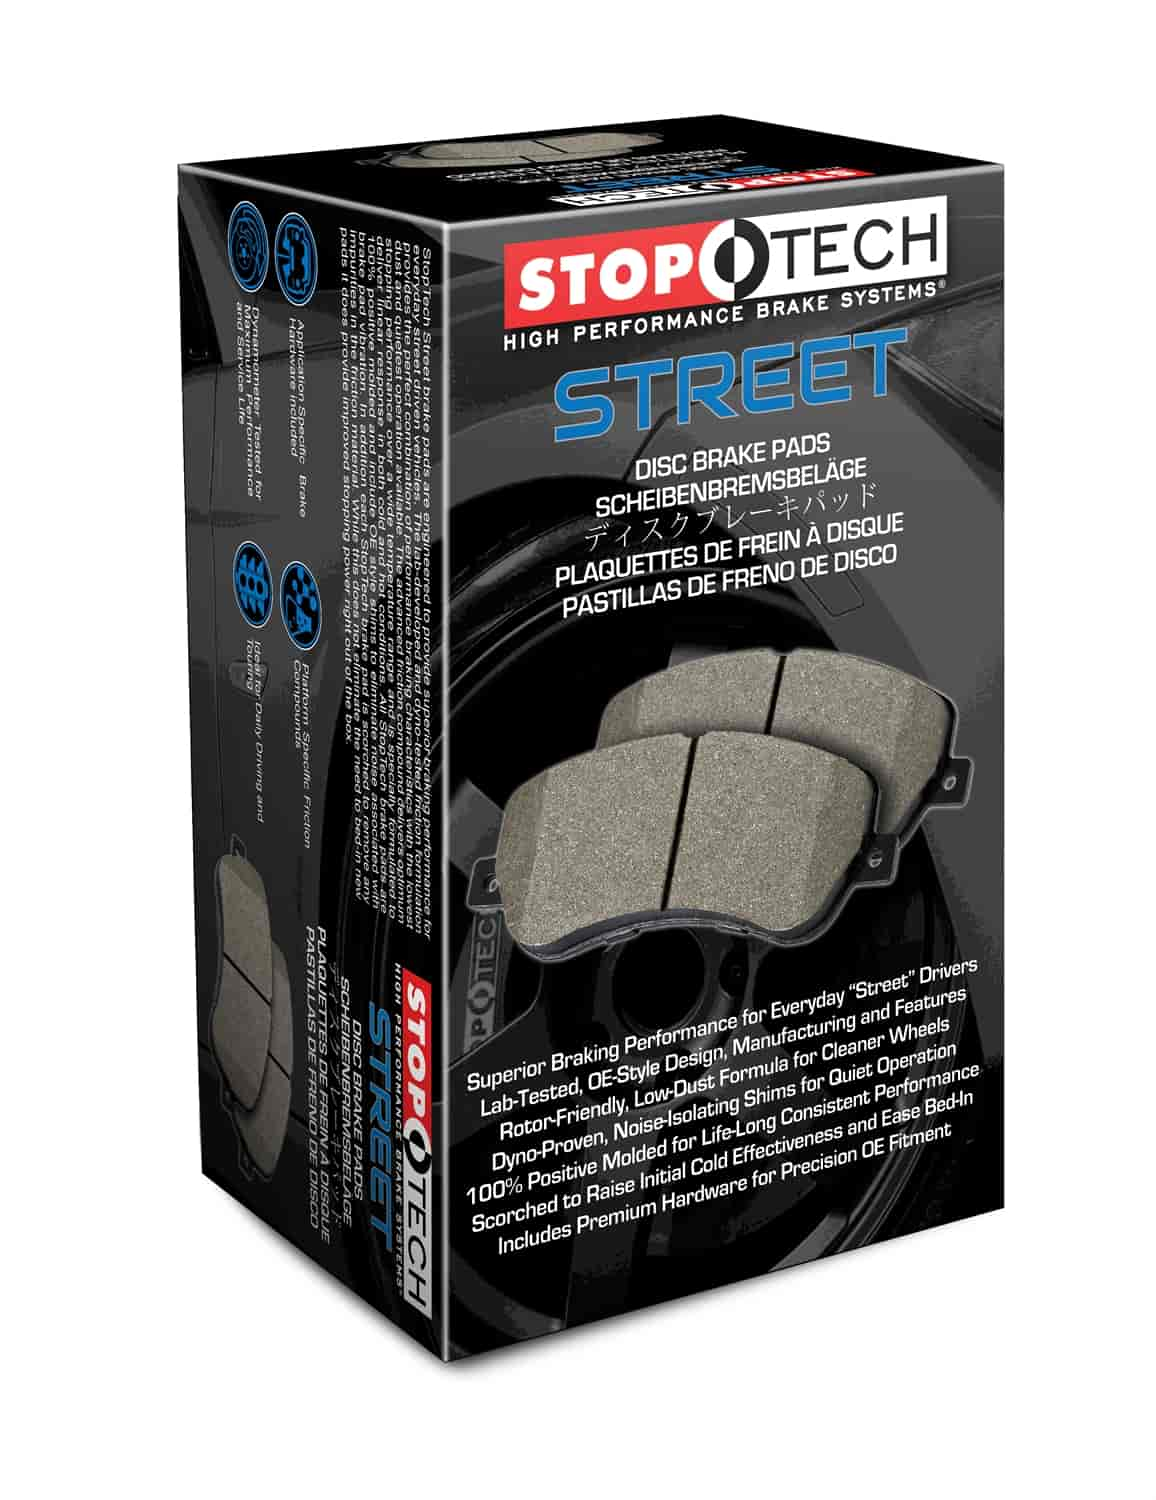 StopTech 308-05770